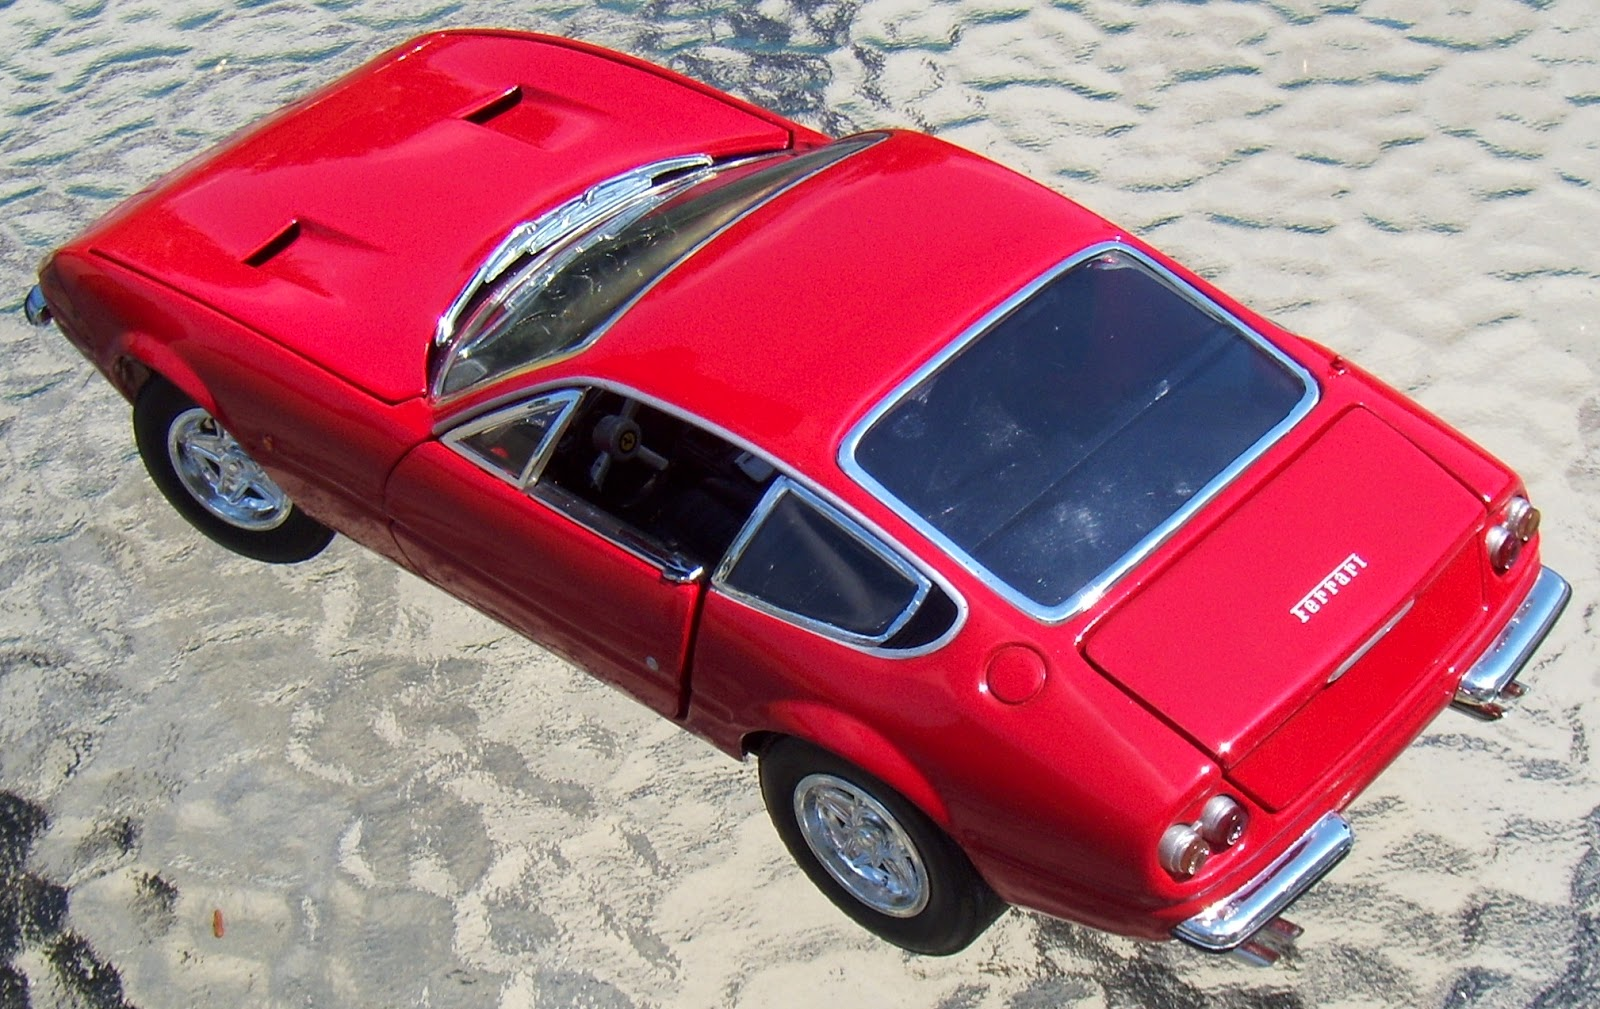 The daytona was the last v 12 ferrari for a few decades as future ferrari s followed the lines of the dino 246 with a mid engine setup and wedge profile